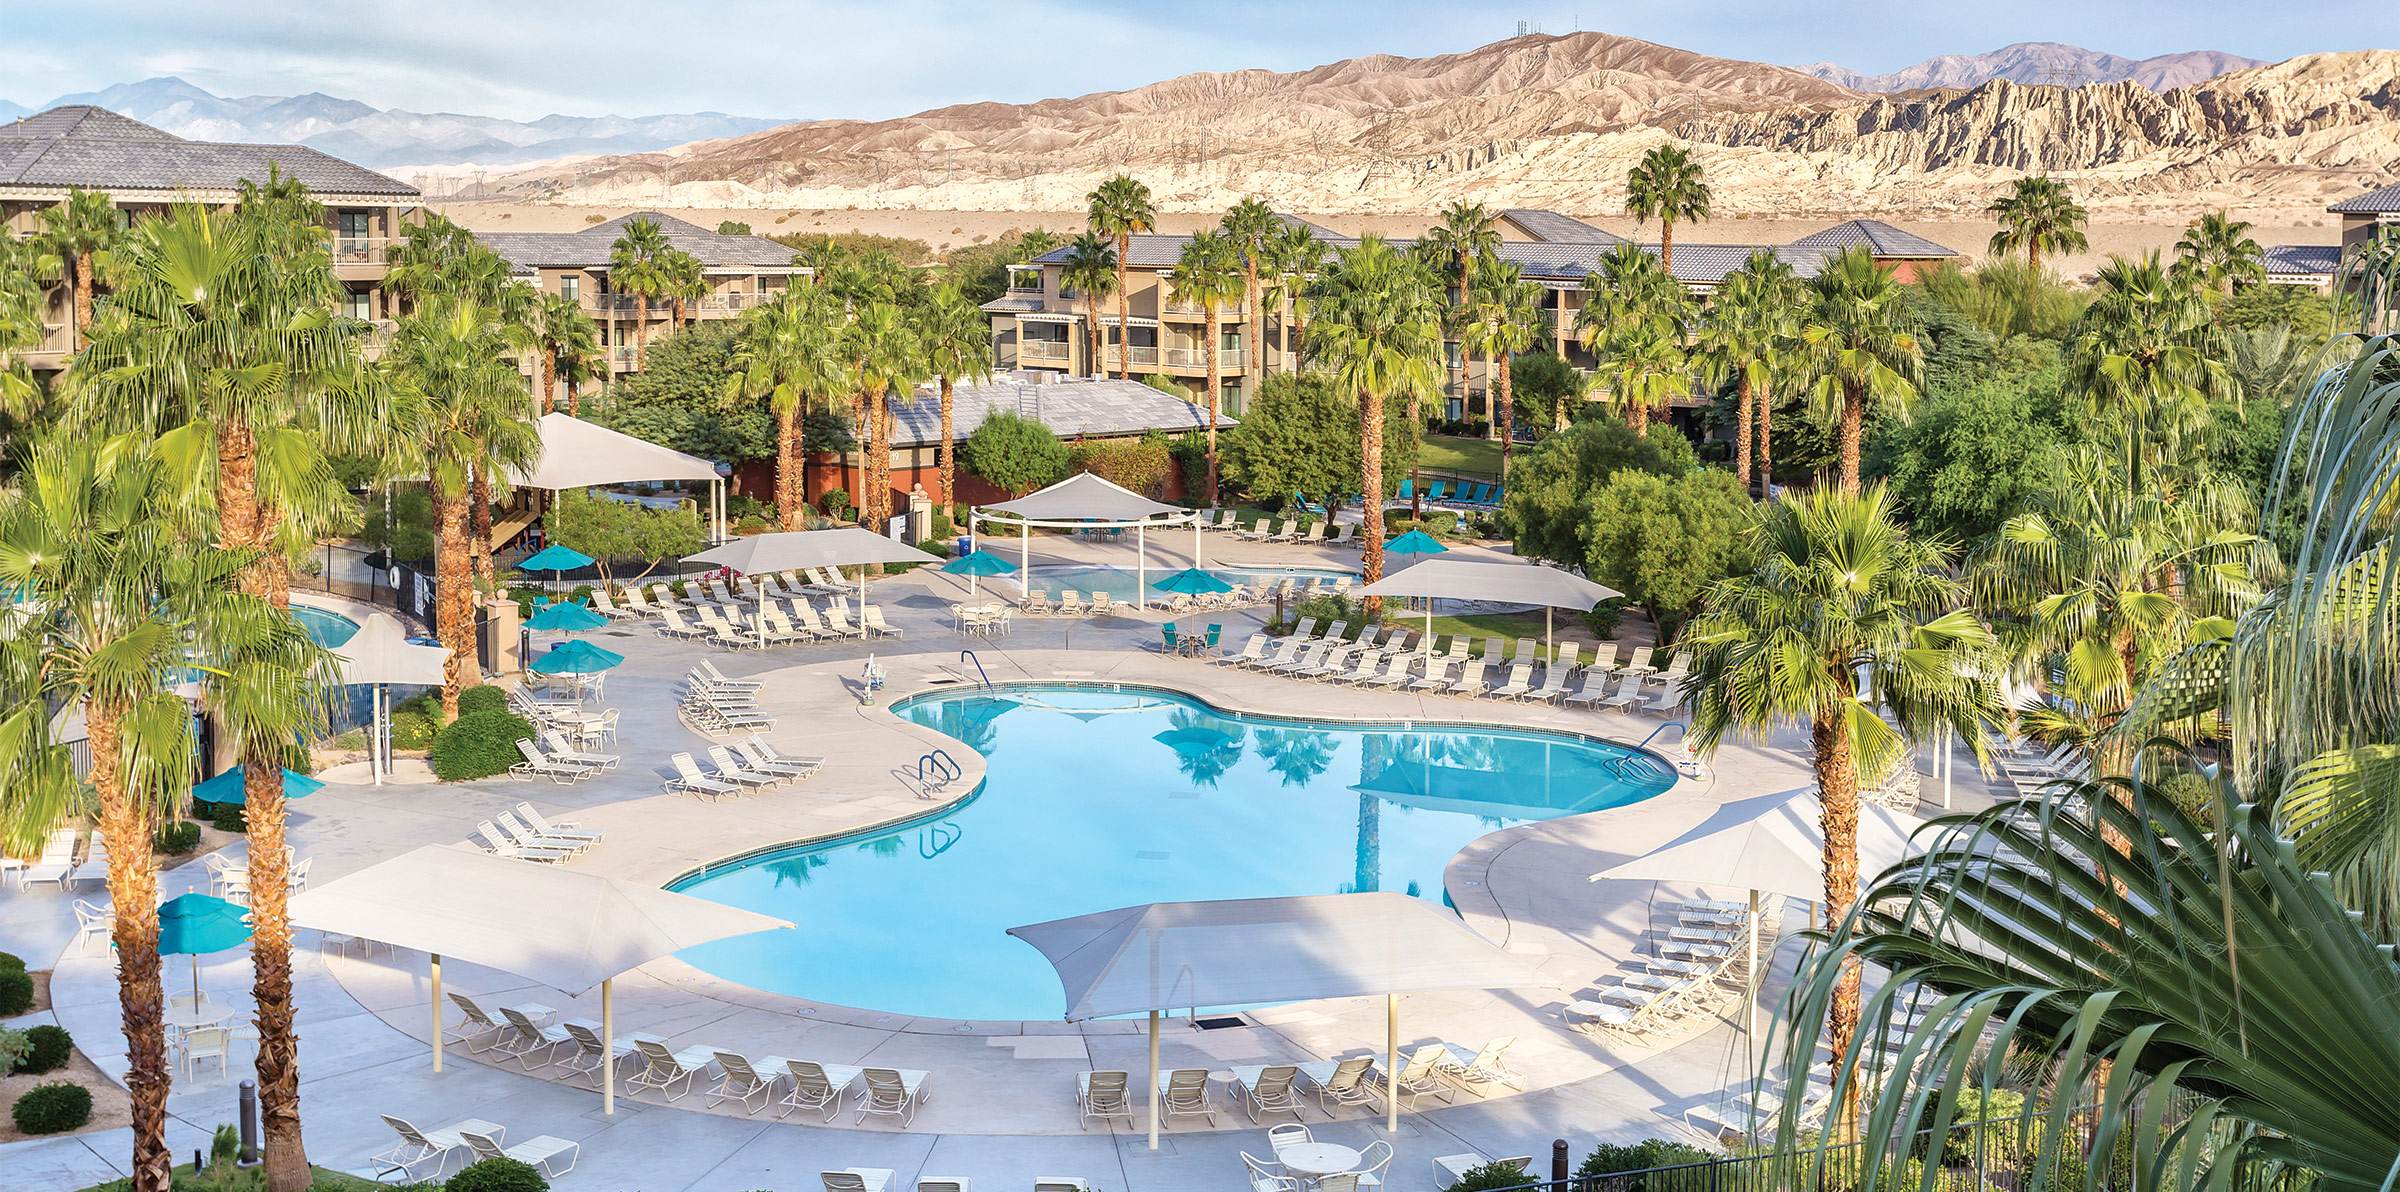 Apartment 1 Bedroom 1 Bath In Indio  CA   Palm Springs  5 miles from COACHELLA photo 20211945